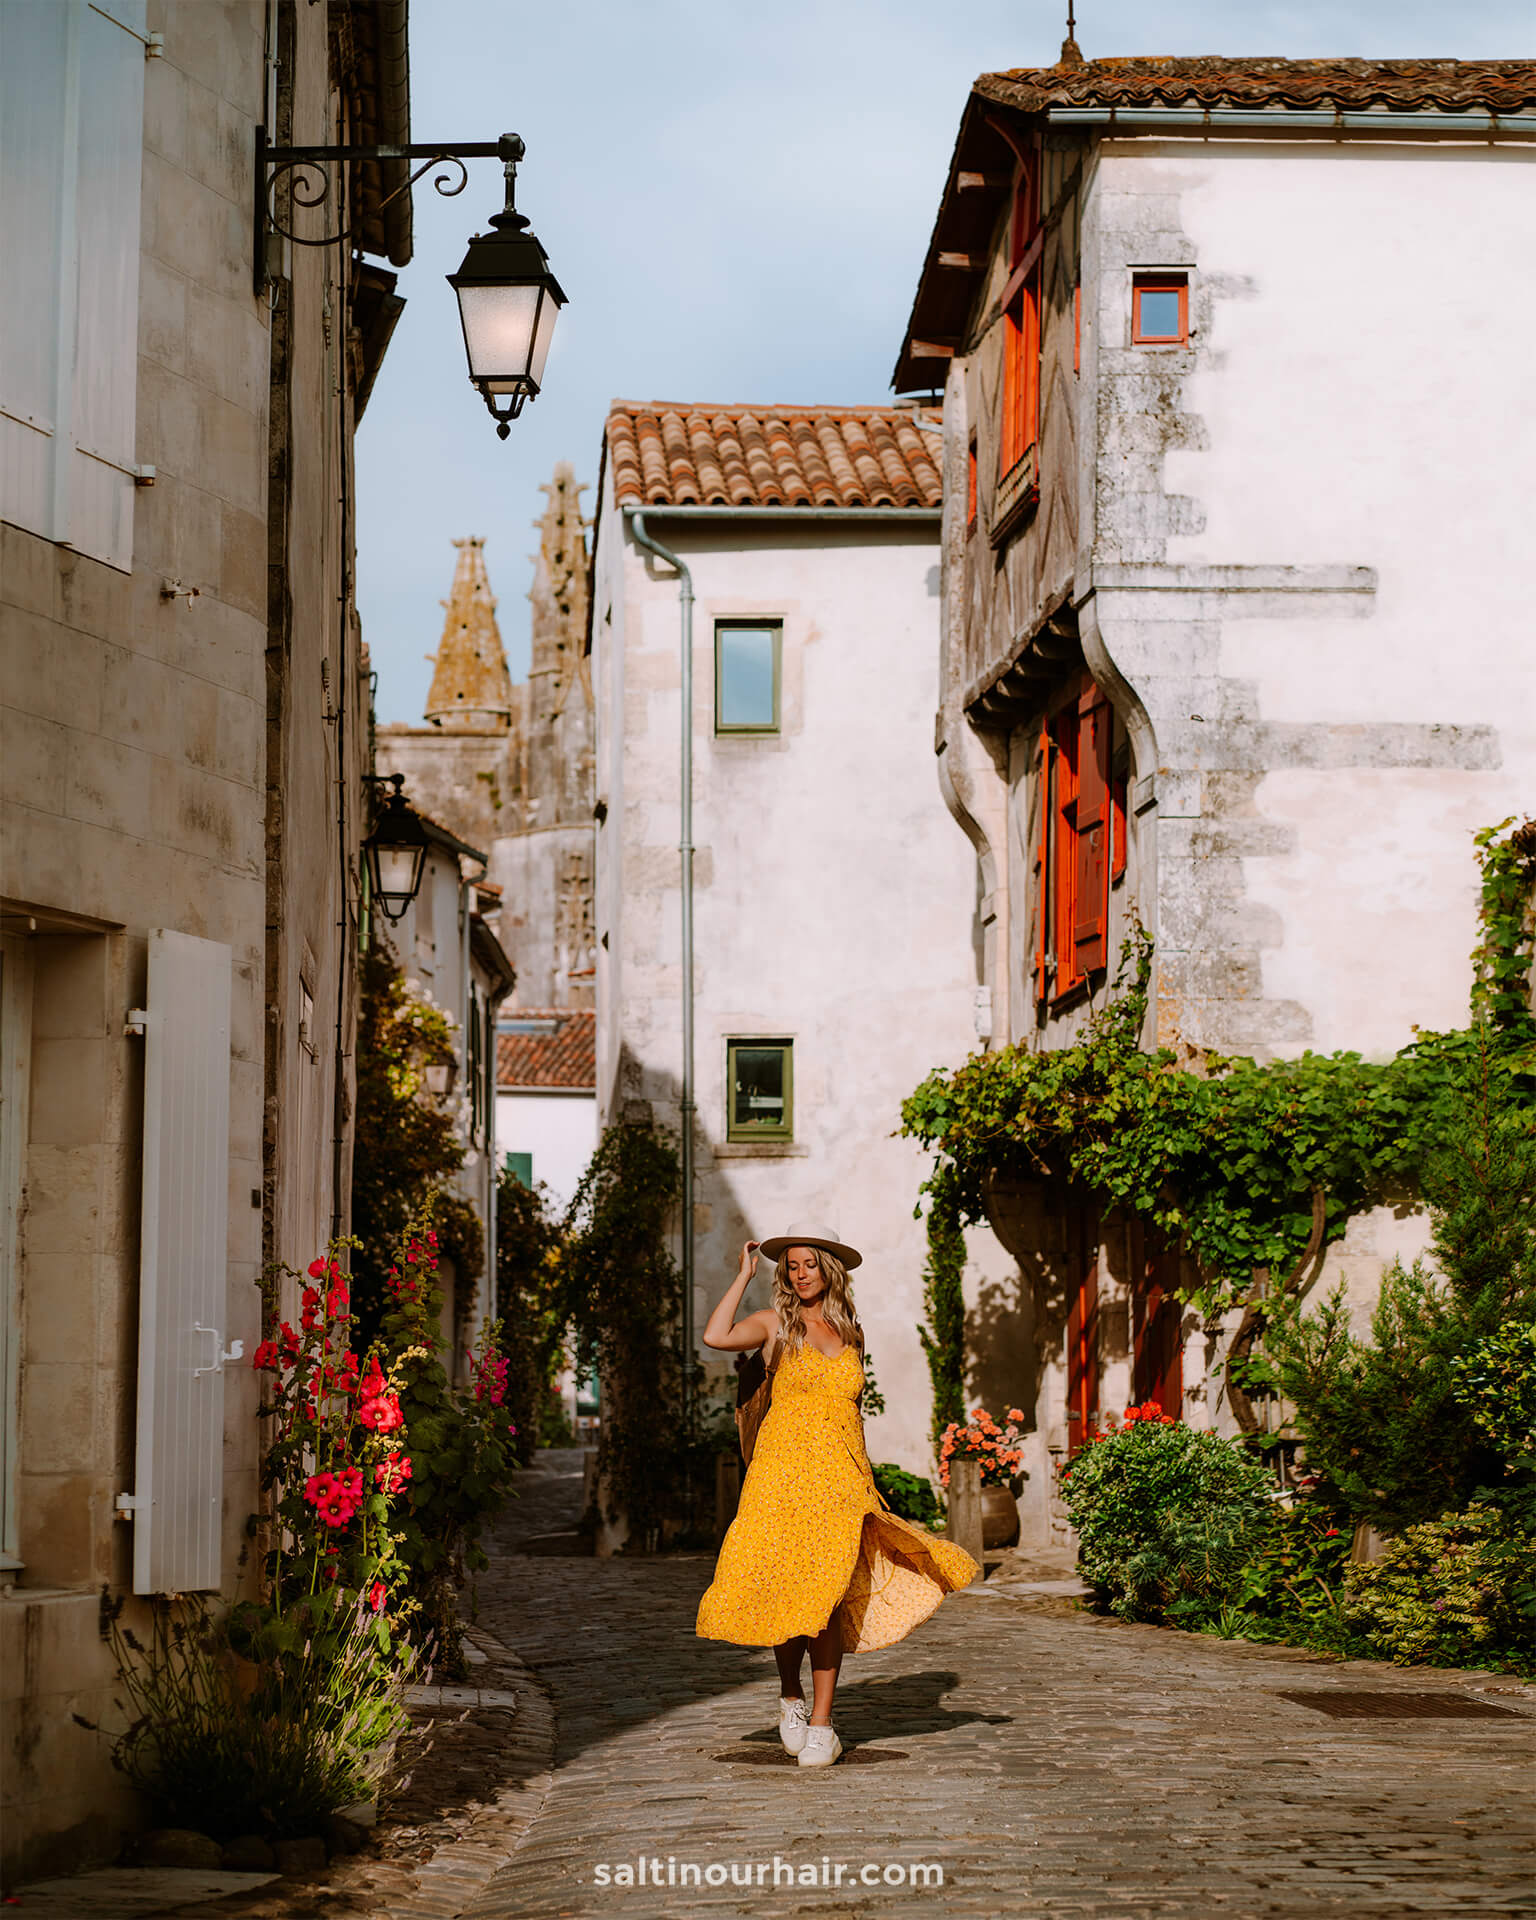 ile de re france best things to do beautiful villages